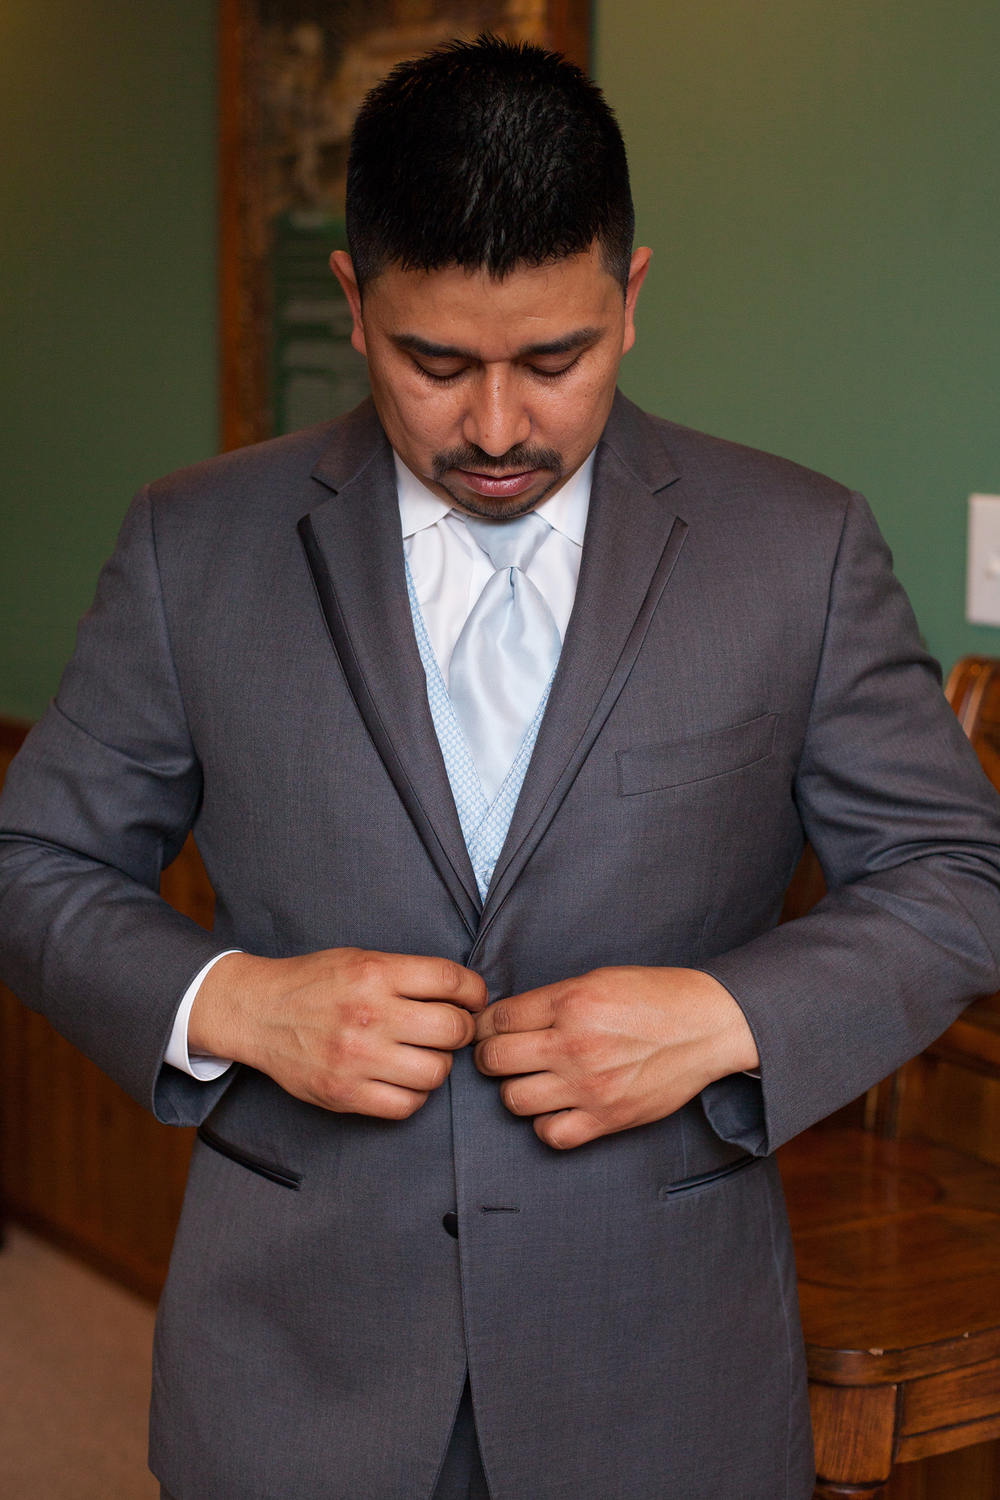 Groom Buttoning his Jacket